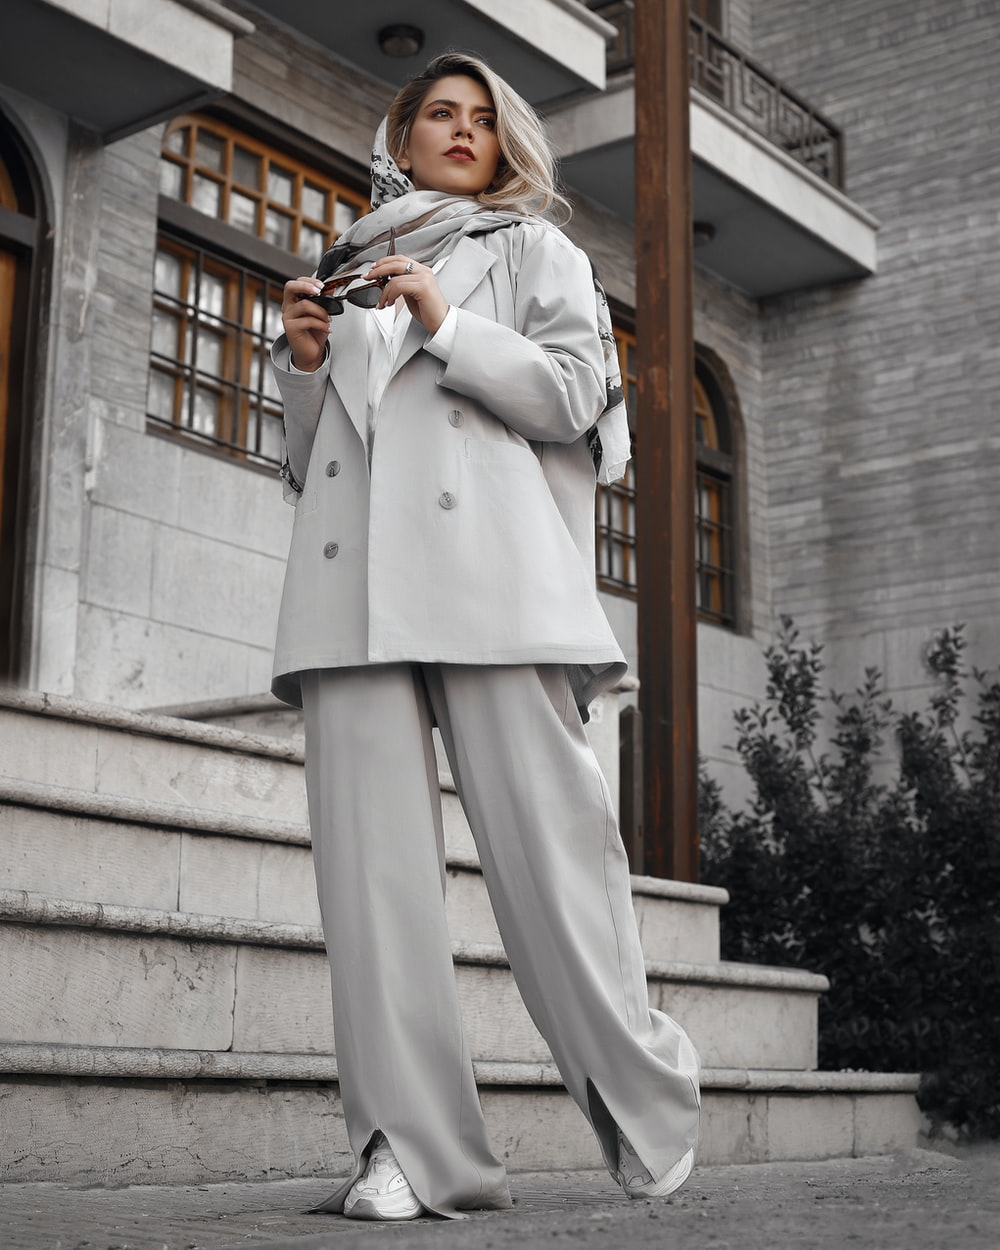 woman in white coat and pants standing on stairs